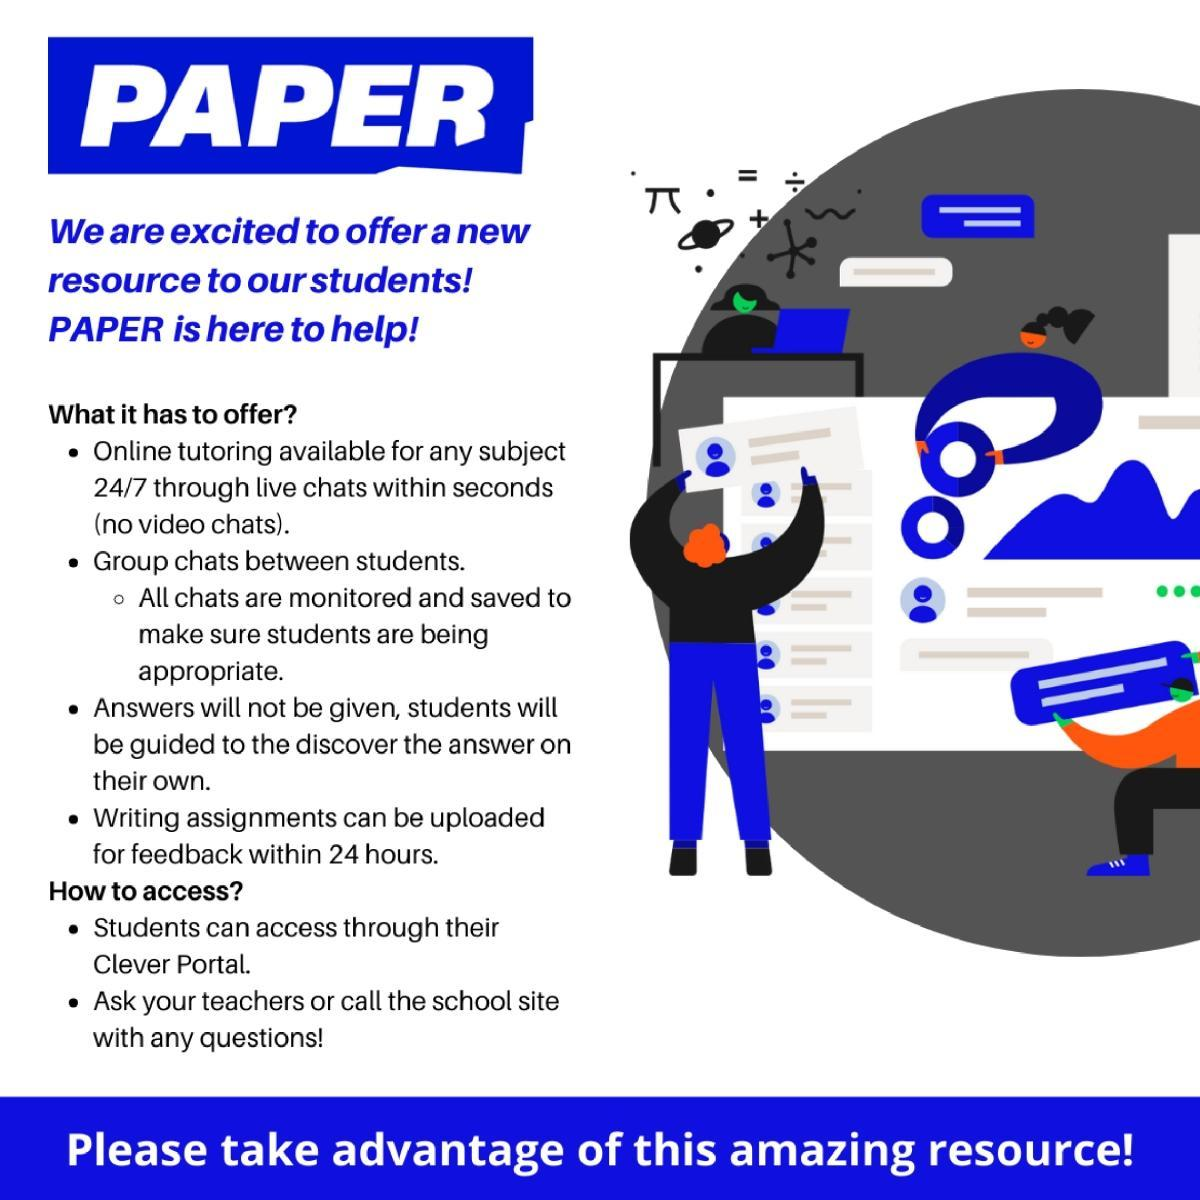 Paper Student Tutoring Resource